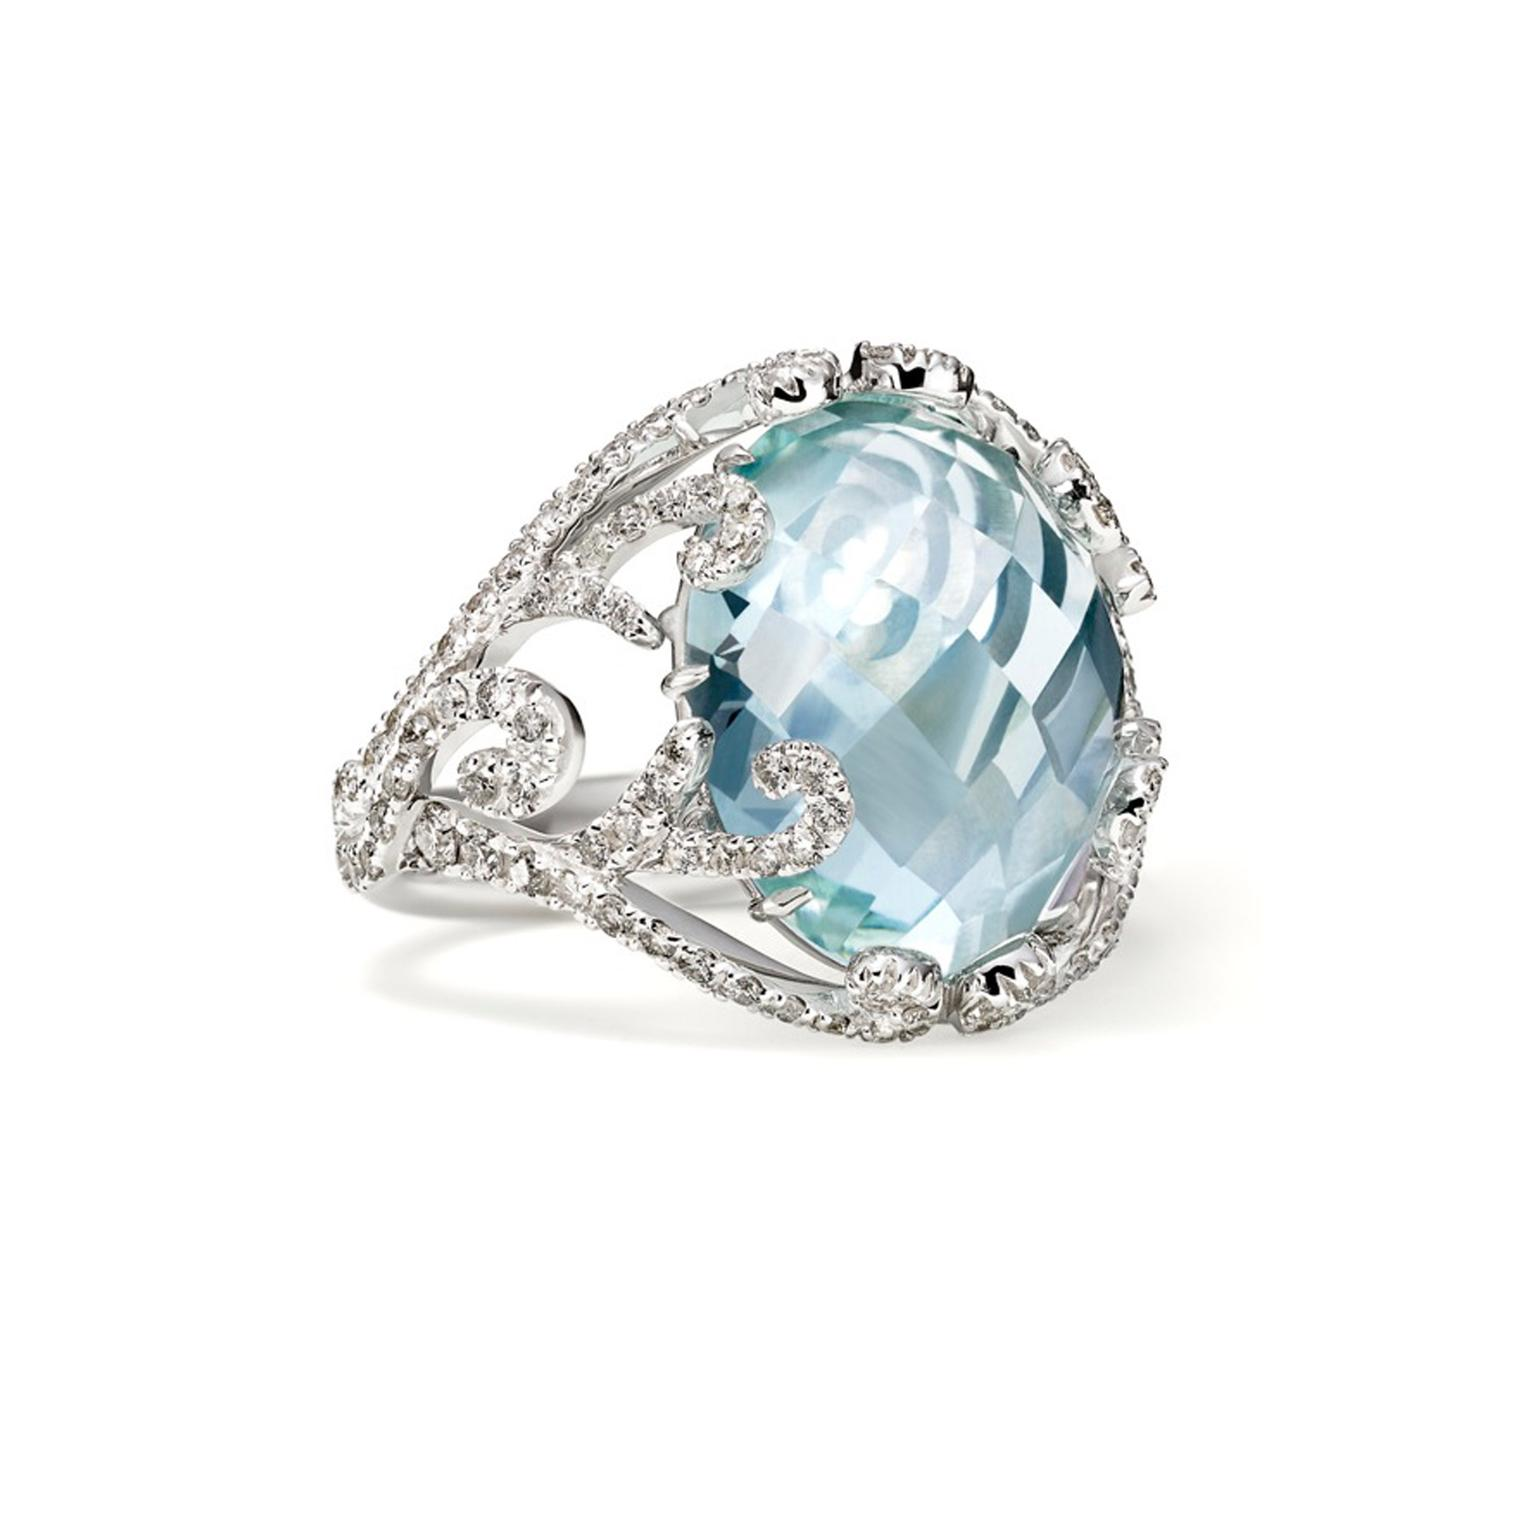 Sarah-Ho-for-William-&-Son-aqua-ring-zoom